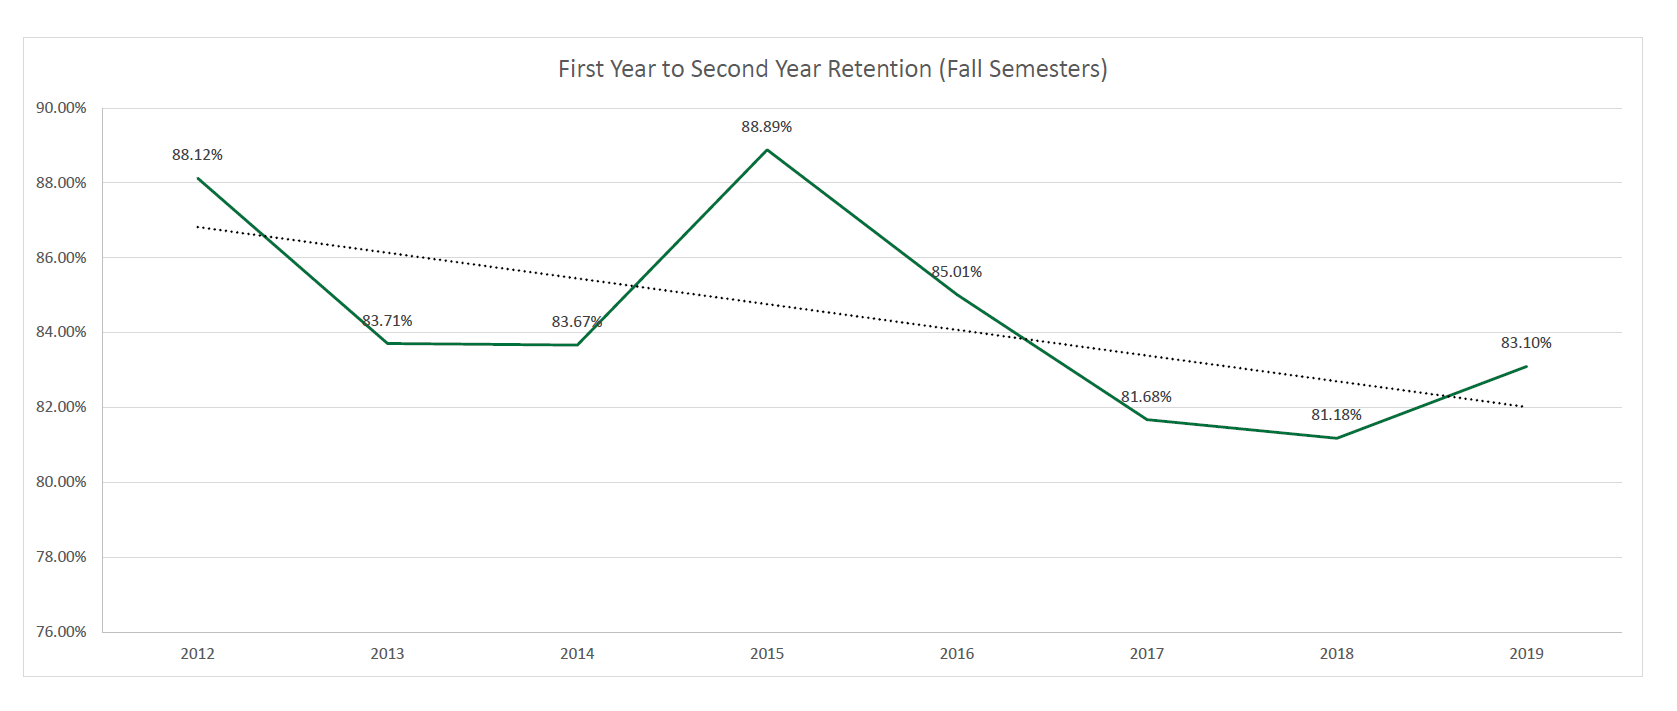 Line graph depicting first to second year retention (fall semesters). data points: 2009: 83.12% ; 2013: 83.71% ; 2014: 83.67% ; 2015: 88.89% ; 2016: 85.01% ; 2017: 81.68% ; 2018: 81.18% ; 2019: 83.10%.